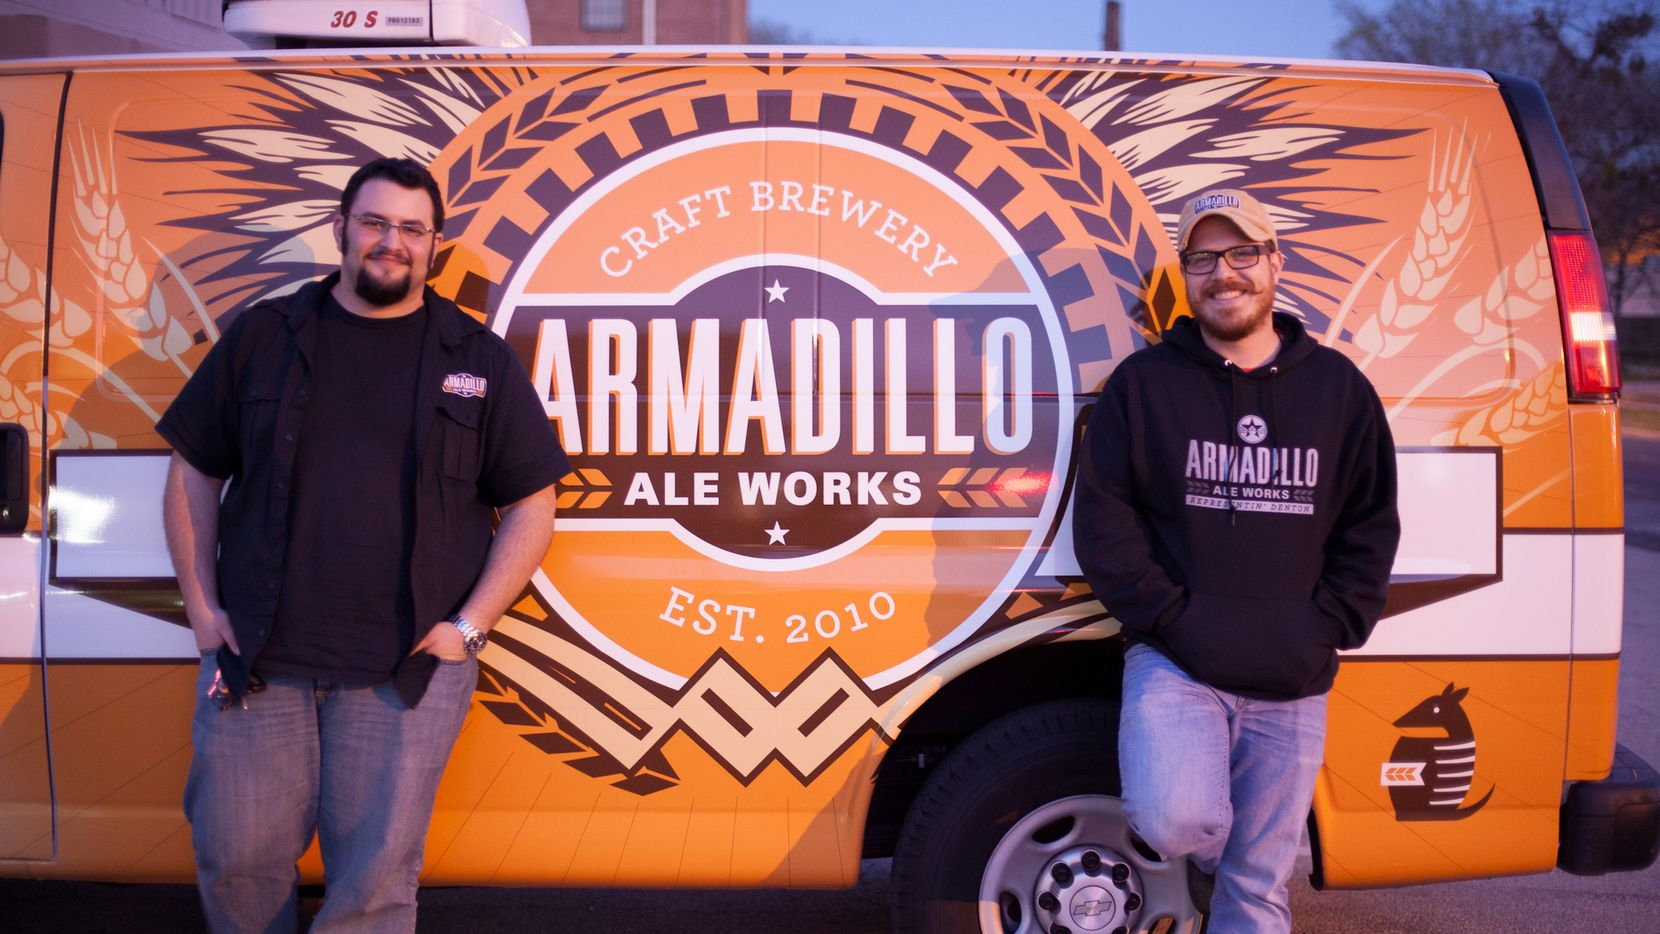 From left to right: Yianni Arestis and Bobby Mullins, founders of Denton brand Armadillo Ale Works.